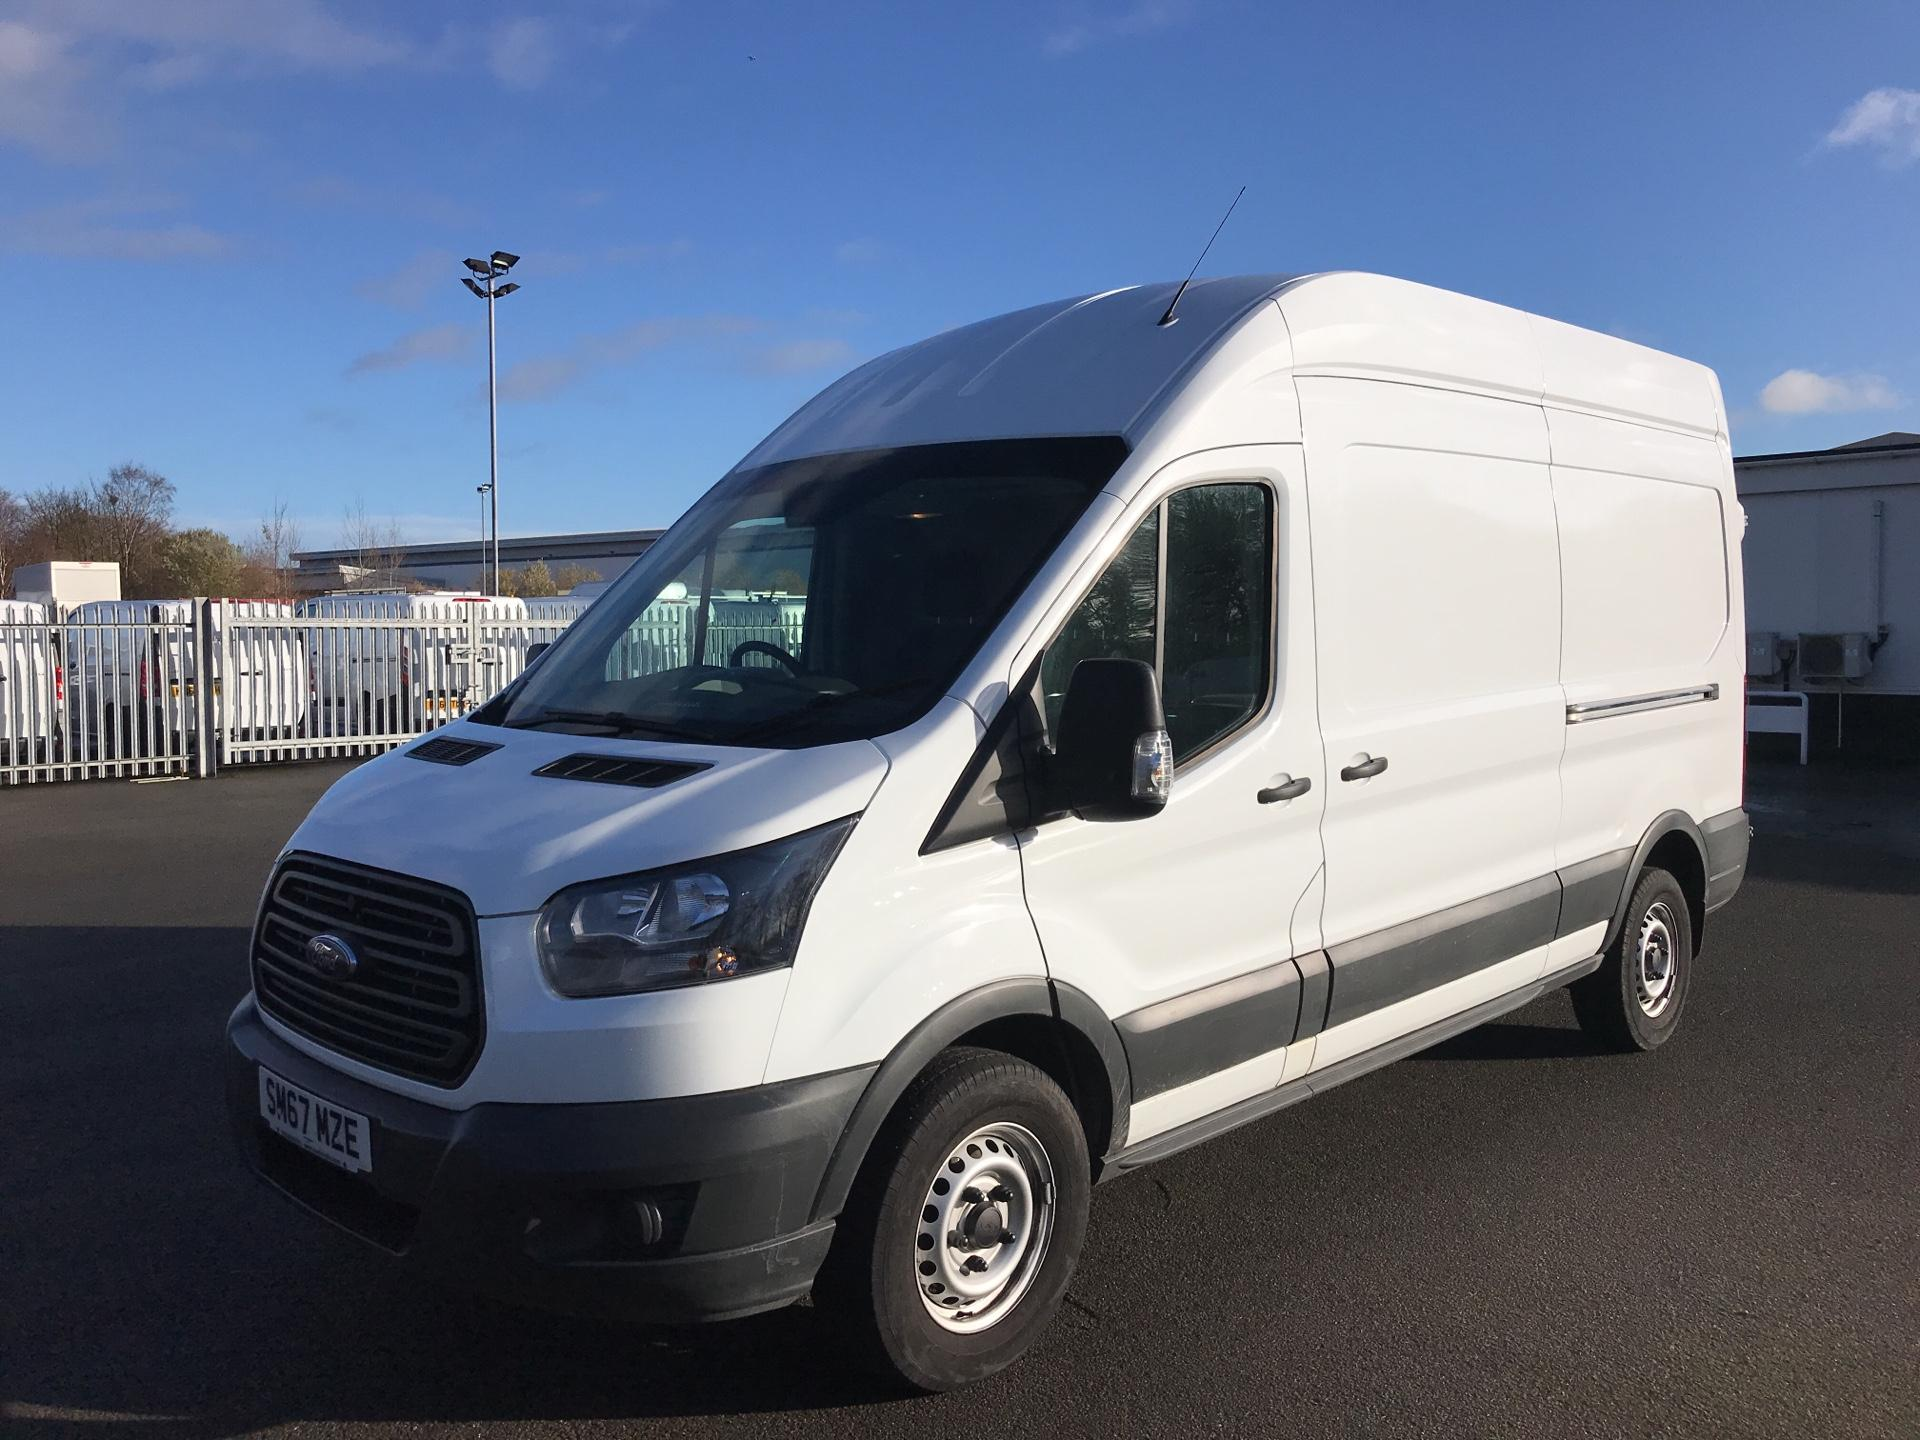 2018 Ford Transit L3 H3 VAN 130PS EURO 6 *VALUE RANGE VEHICLE - CONDITION  REFLECTED IN PRICE*